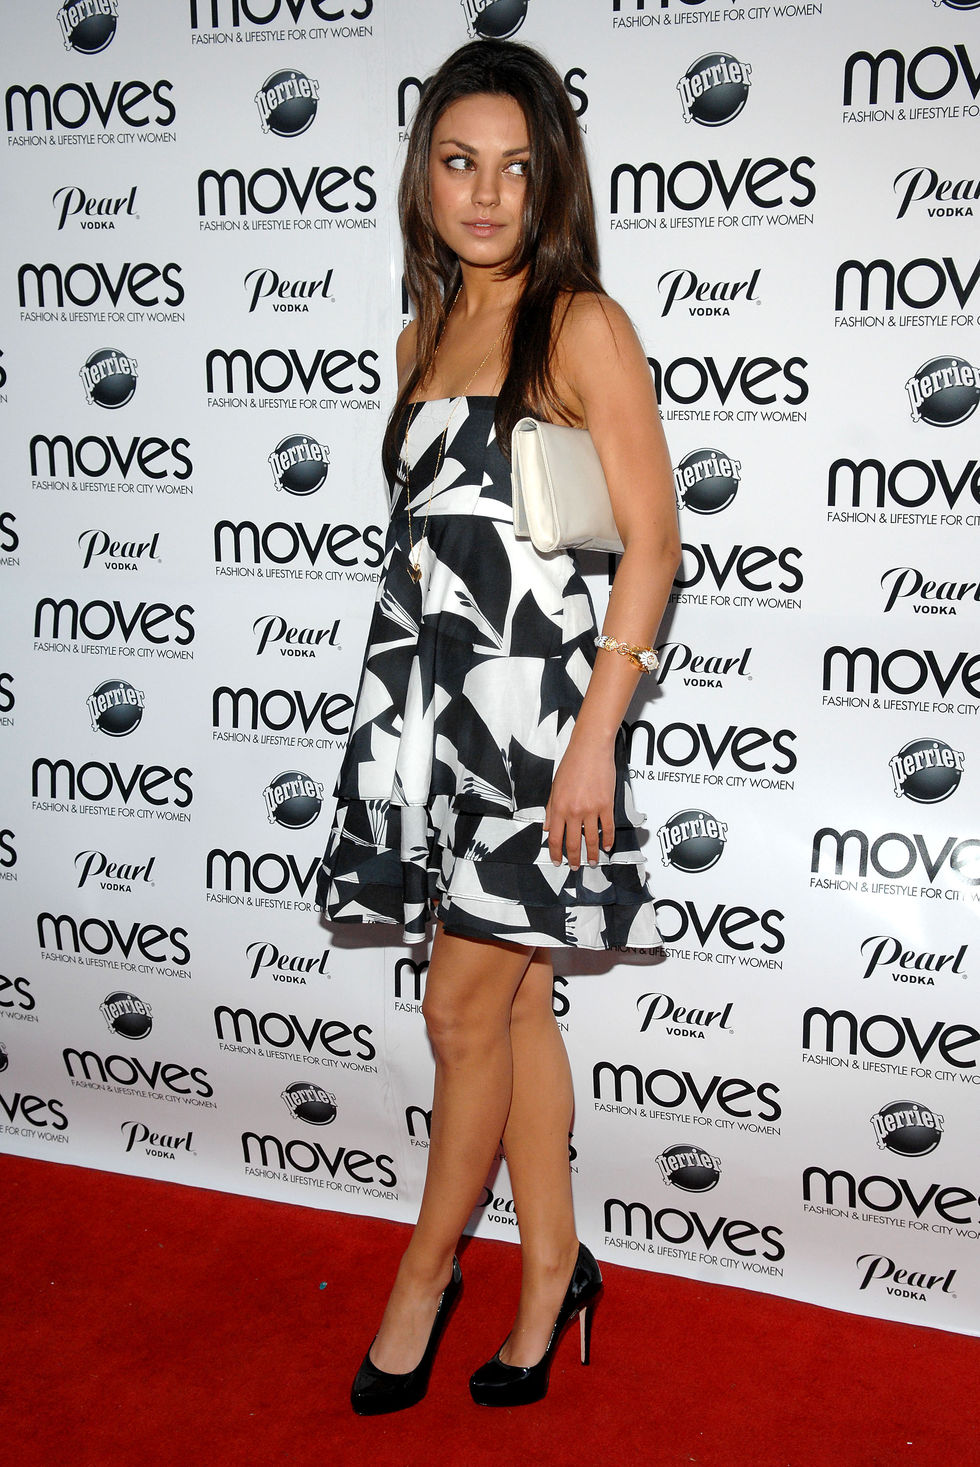 mila-kunis-new-york-moves-art-and-design-issue-launch-party-01